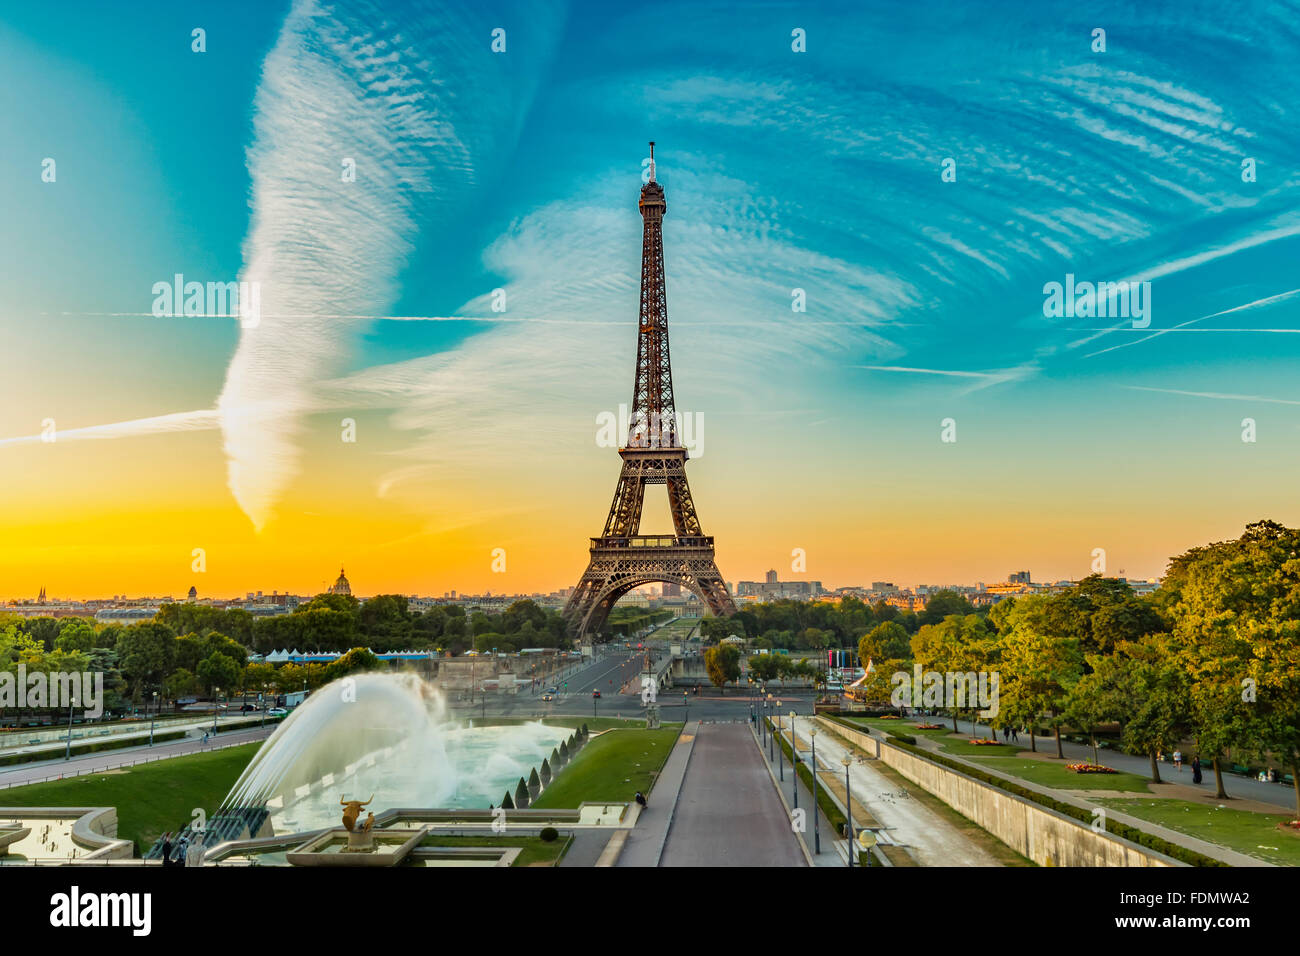 Eiffel Tower seen at sunrise from Esplanade du Trocadero in Paris. - Stock Image